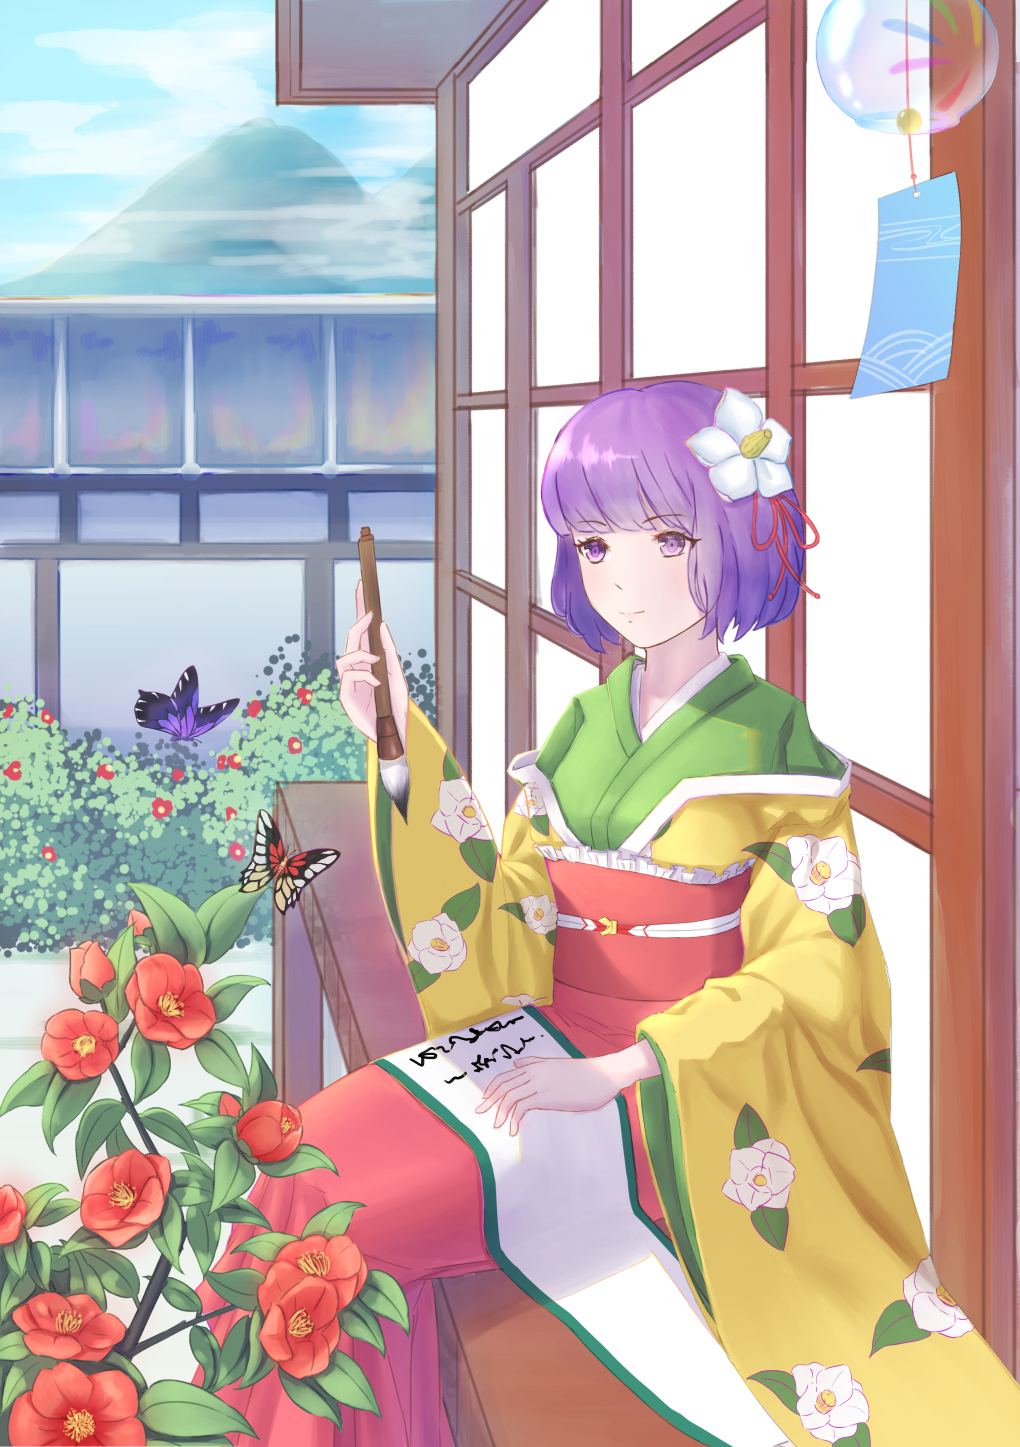 1girl architecture bangs blue_sky blunt_bangs bob_cut breasts bush butterfly calligraphy_brush camellia closed_mouth clouds commentary_request day east_asian_architecture eyebrows_visible_through_hair eyelashes feet_out_of_frame floral_print flower green_kimono hair_flower hair_ornament hakama hieda_no_akyuu highres holding_brush insect japanese_clothes kimono lan_qiandai layered_clothing layered_kimono light_smile long_sleeves medium_breasts mountain obi outdoors paintbrush purple_hair red_hakama sash scroll short_hair sitting sky solo swept_bangs touhou veranda violet_eyes wide_sleeves wind_chime wooden_wall yellow_kimono